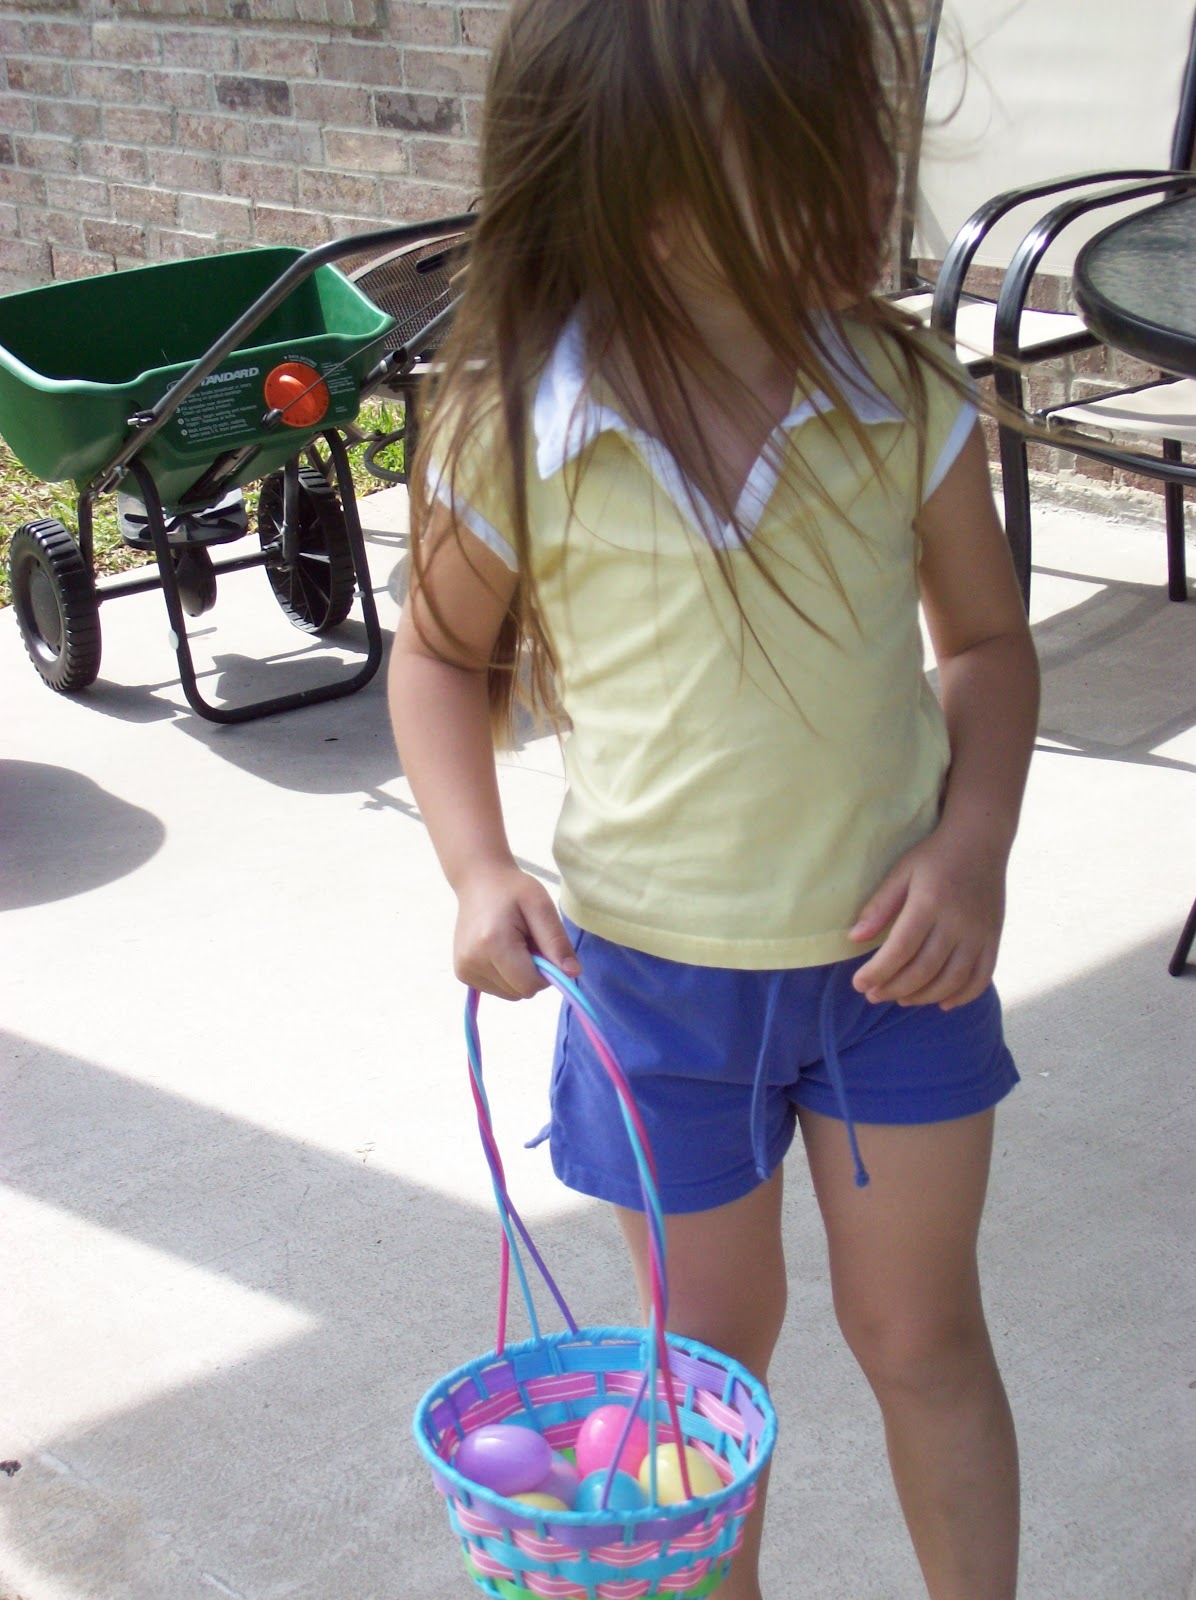 Easter Egg Hunting - 101_2229.JPG